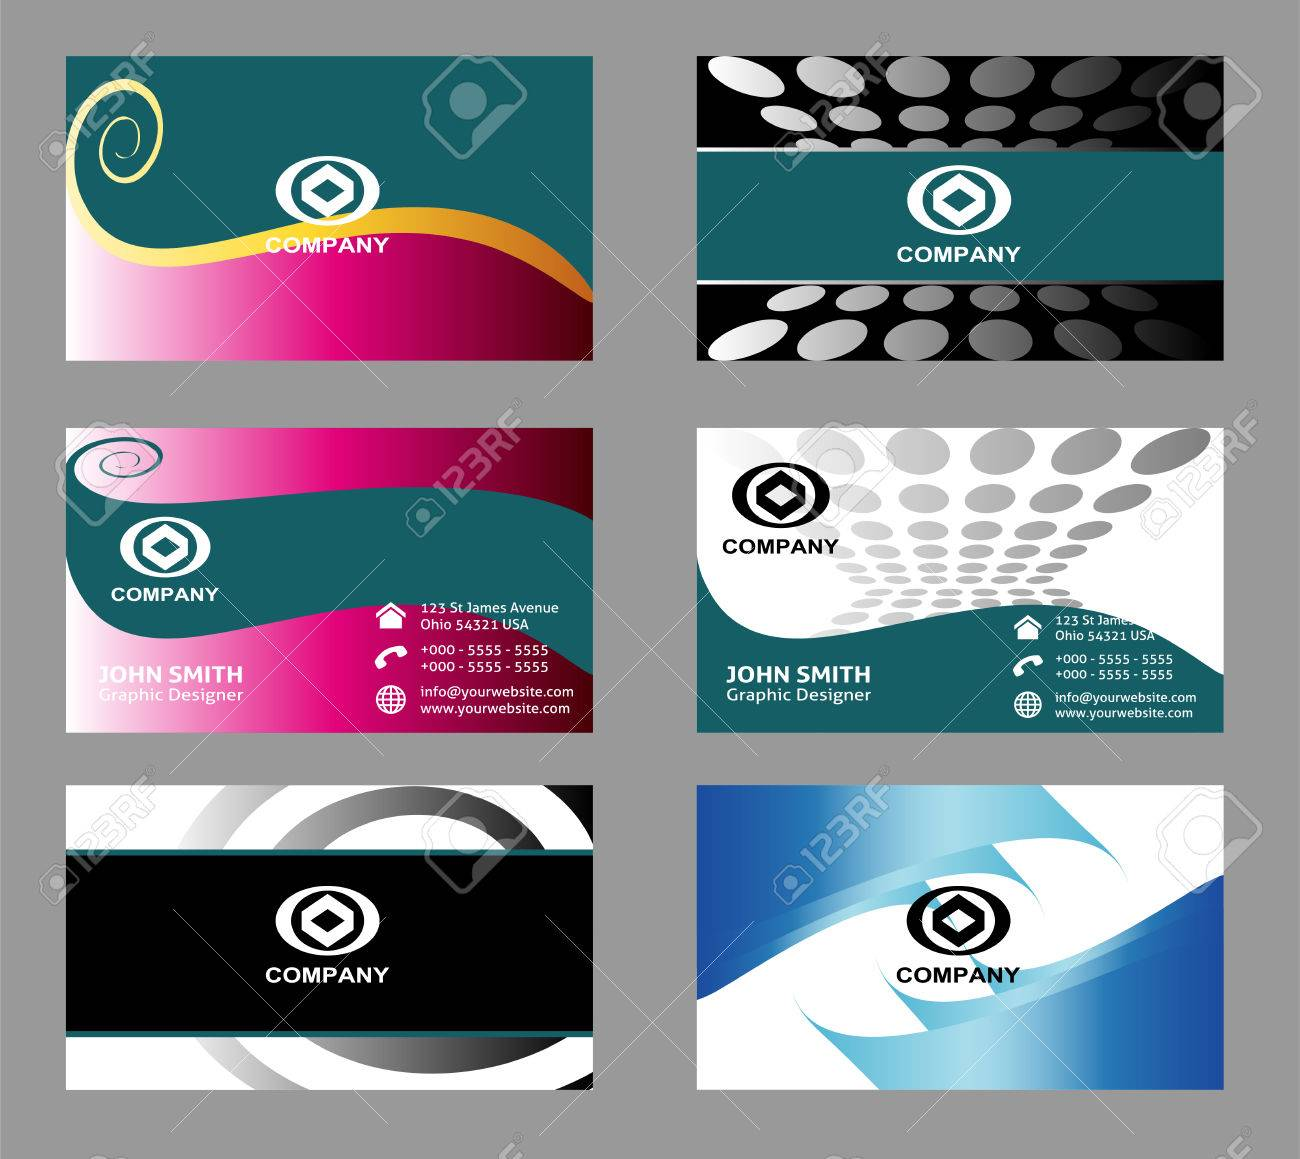 Business cards templates set royalty free cliparts vectors and business cards templates set stock vector 44380755 reheart Choice Image